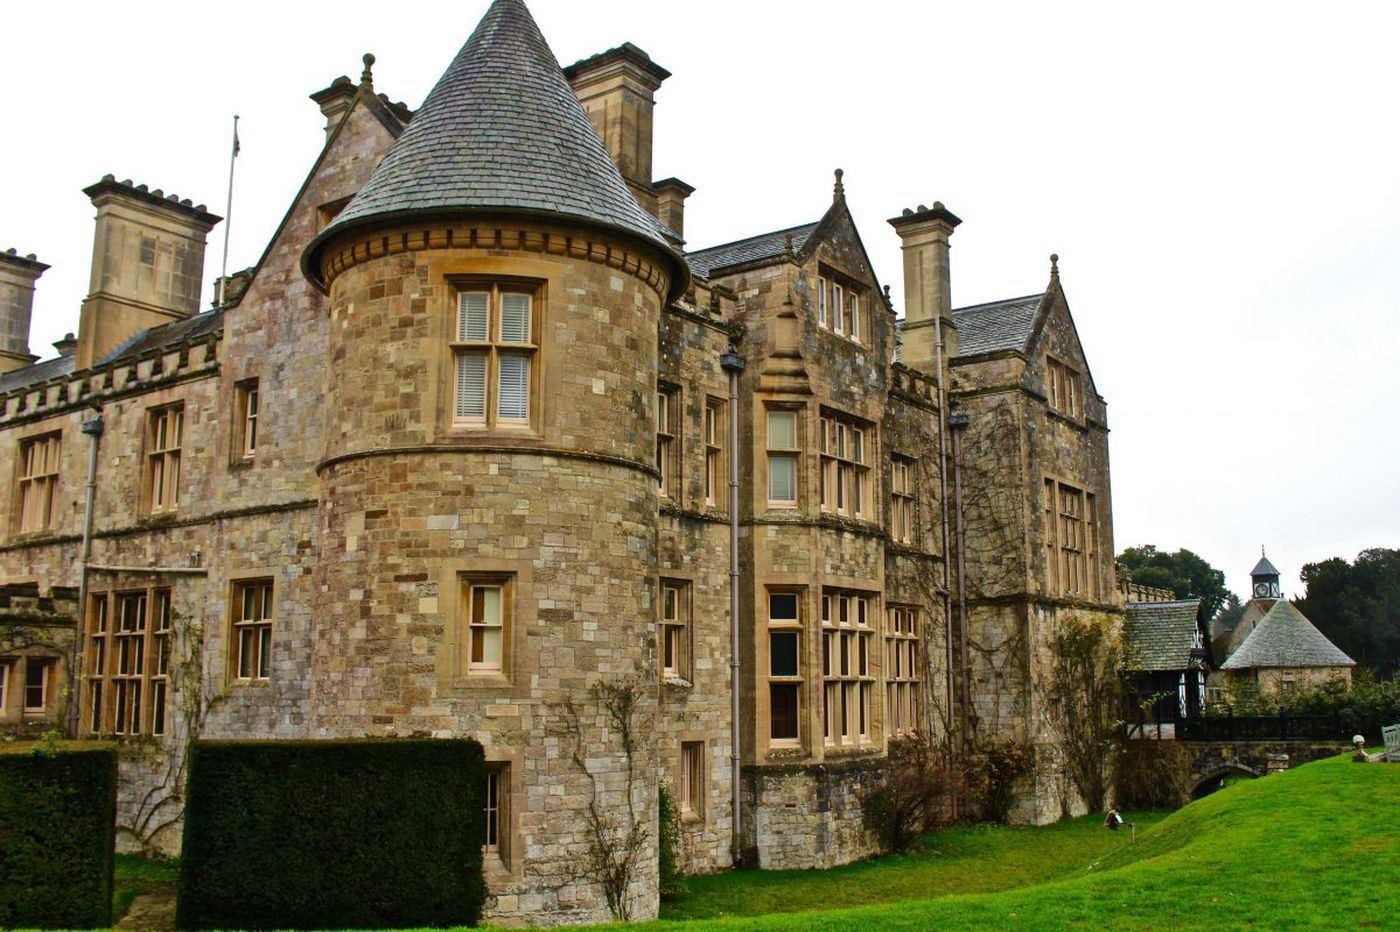 Beaulieu: Downton Abbey-Style Estate With Something for Everyone